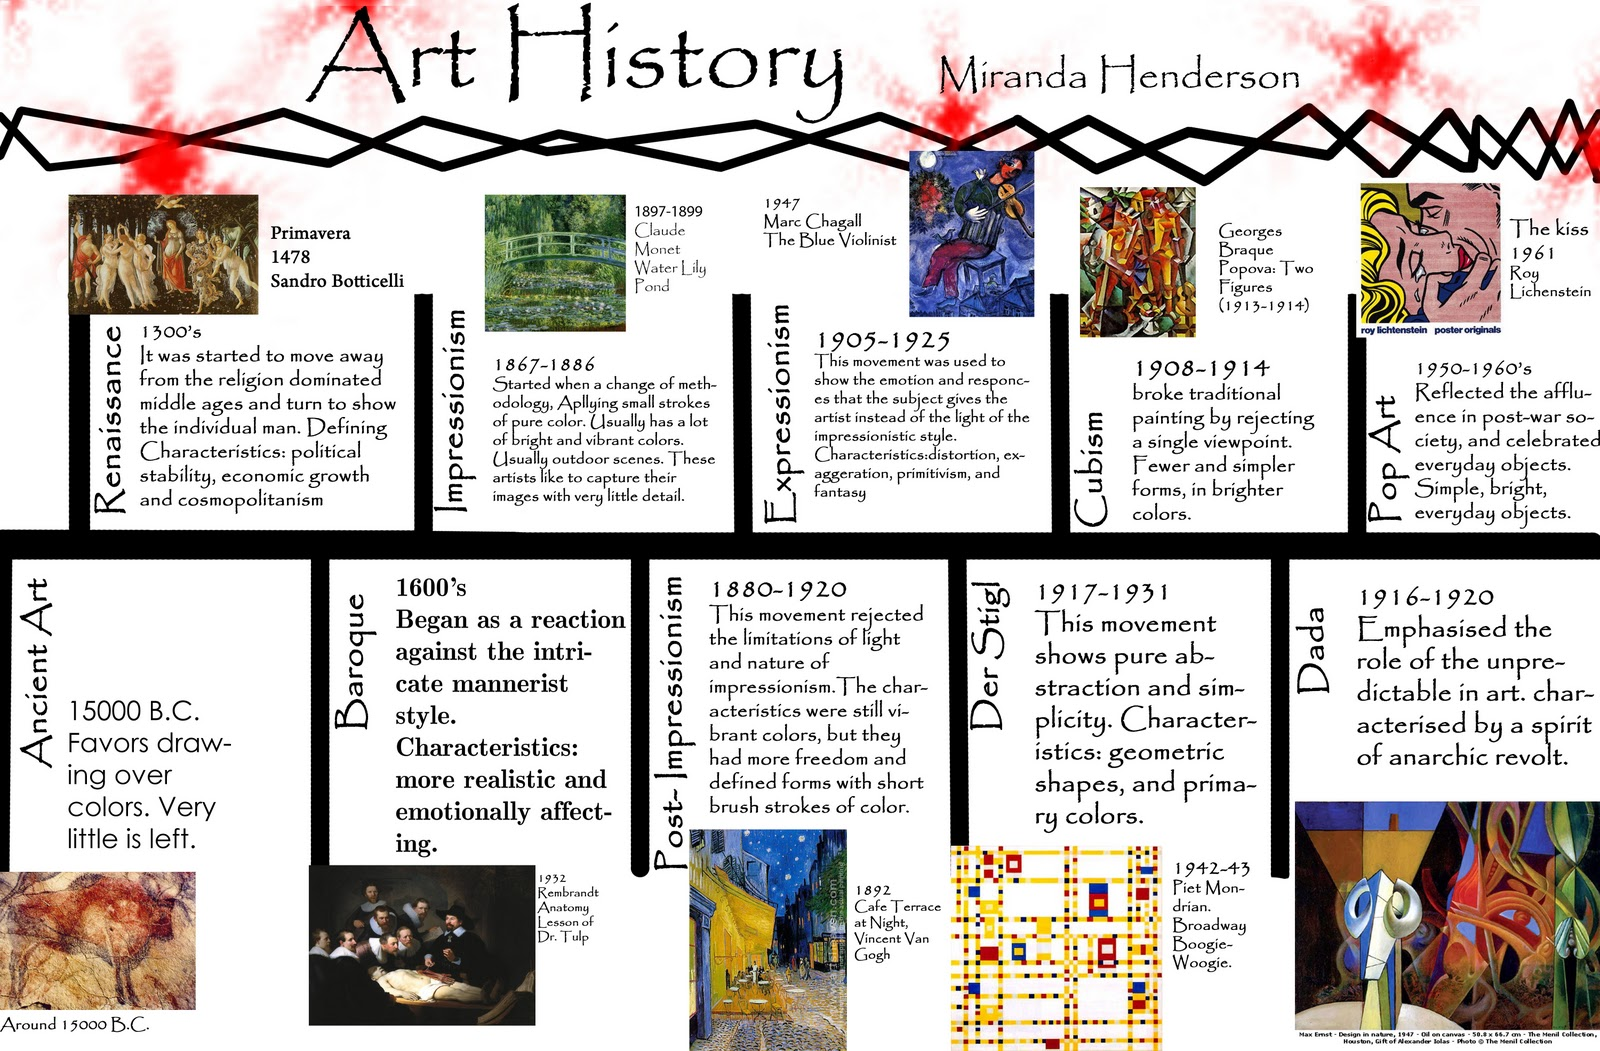 art histroy Learn art history exam 1 with free interactive flashcards choose from 500 different sets of art history exam 1 flashcards on quizlet.